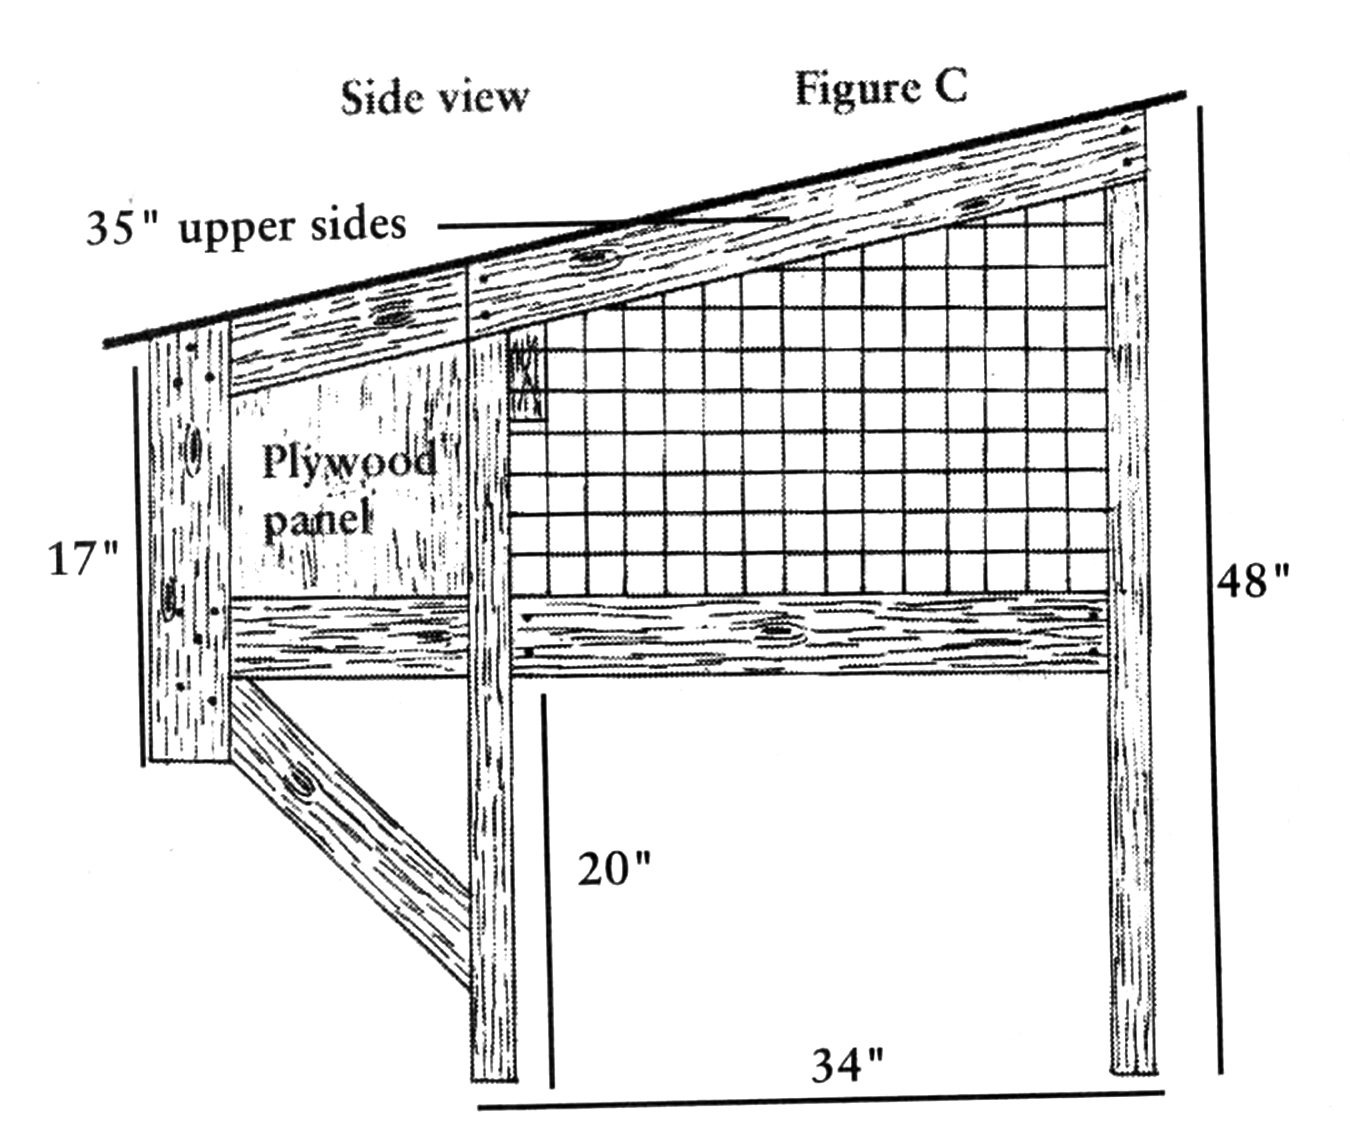 How to Build Your Own Rabbit Hutch (Diagrams) - Countryside Rabbit House Plans Blueprints on broiler house blueprints, cat house blueprints, bat house blueprints, butterfly house blueprints, dog house blueprints, tree house blueprints, squirrel house blueprints, hog house blueprints, wolf house blueprints, duck house blueprints, hen house blueprints, poultry house blueprints, rainbow house blueprints, raven house blueprints, fish house blueprints, dragon house blueprints, goat house blueprints, chicken house blueprints, owl house blueprints, bird house blueprints,